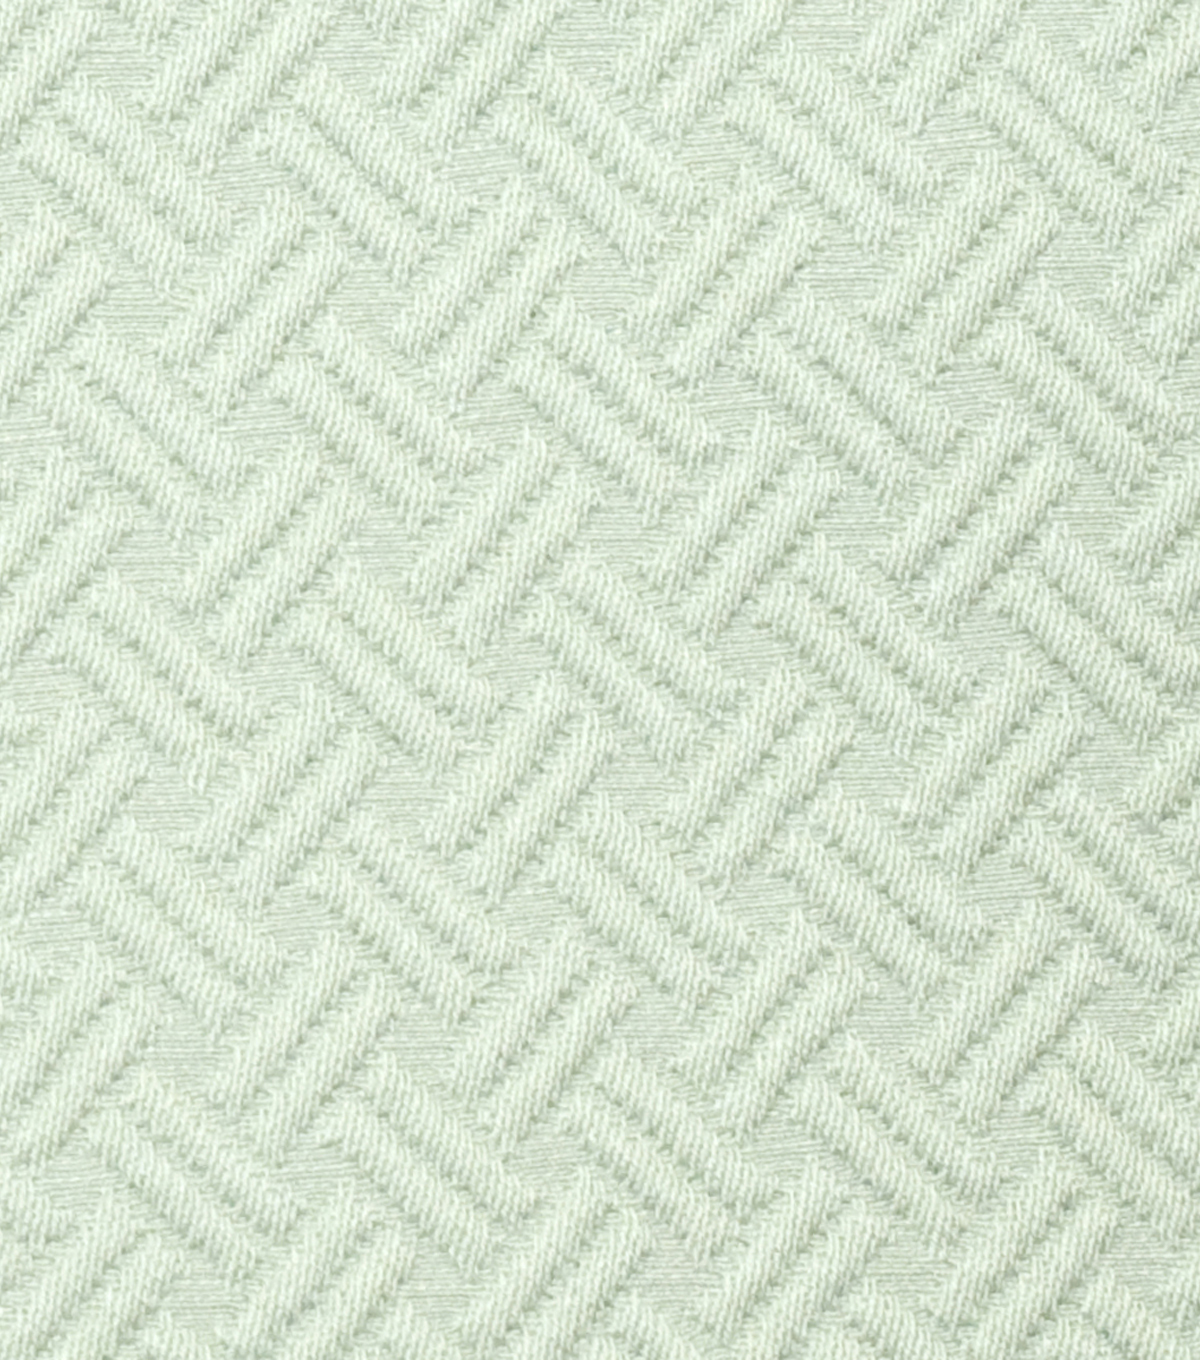 Home Decor 8\u0022x8\u0022 Fabric Swatch-Jaclyn Smith Lane-Spa